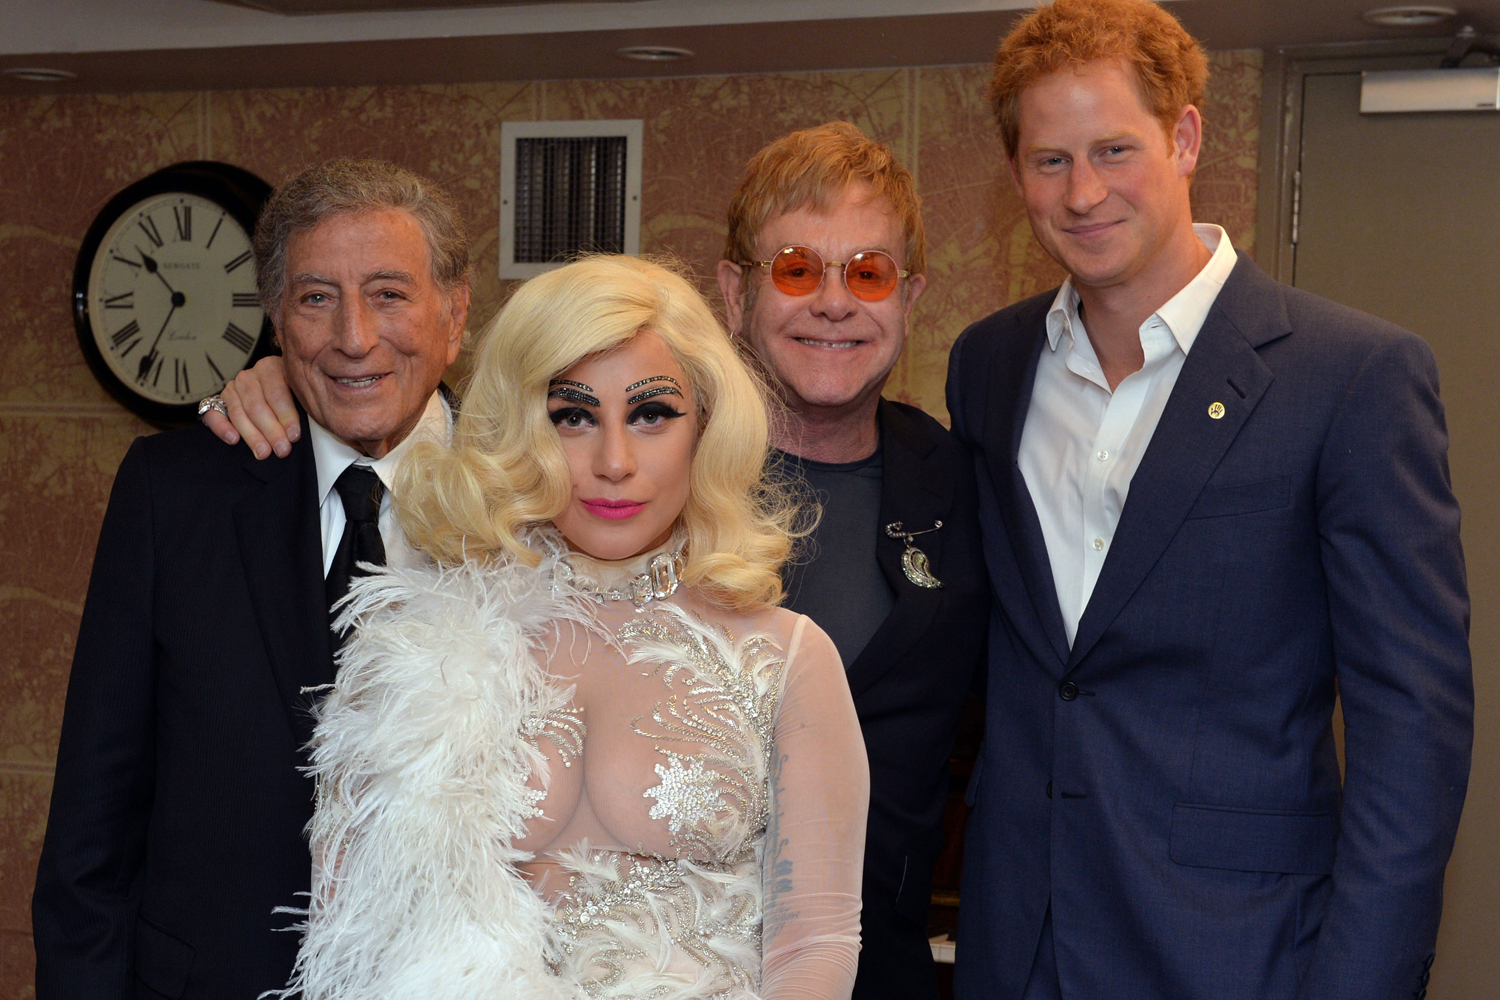 From right, Britain's Prince Harry, Elton John, Lady Gaga and Tony Bennett pose backstage for photographs after Bennett and Lady Gaga's performance as part of the Cheek to Cheek Tour at the Royal Albert Hall in London,  June 8, 2015